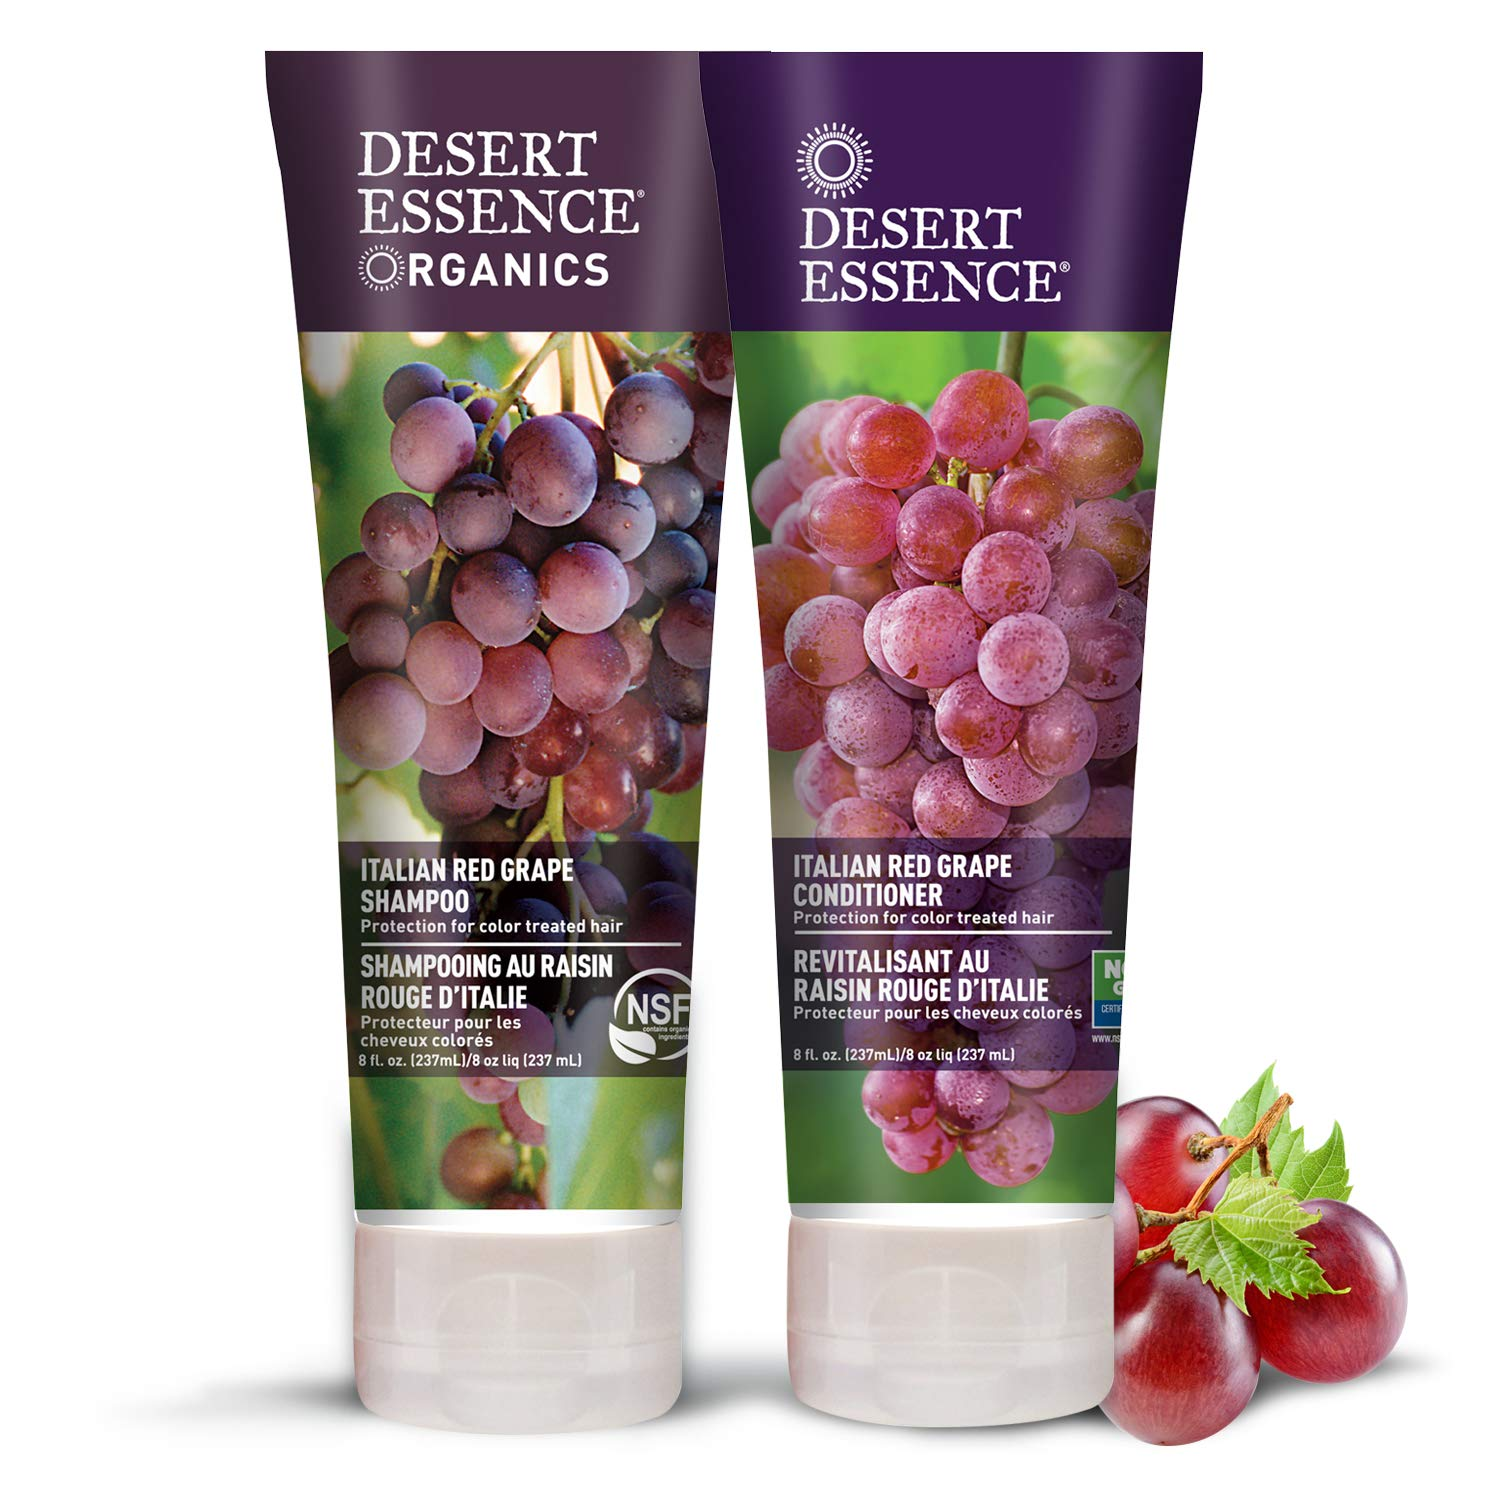 Desert Essence Italian Red Grape Shampoo & Conditioner Bundle - 8 Fl Ounce - Protection For Color Treated Hair - Antioxidant - Vitamin B5 - Natural - Protect Hair From UV Filters